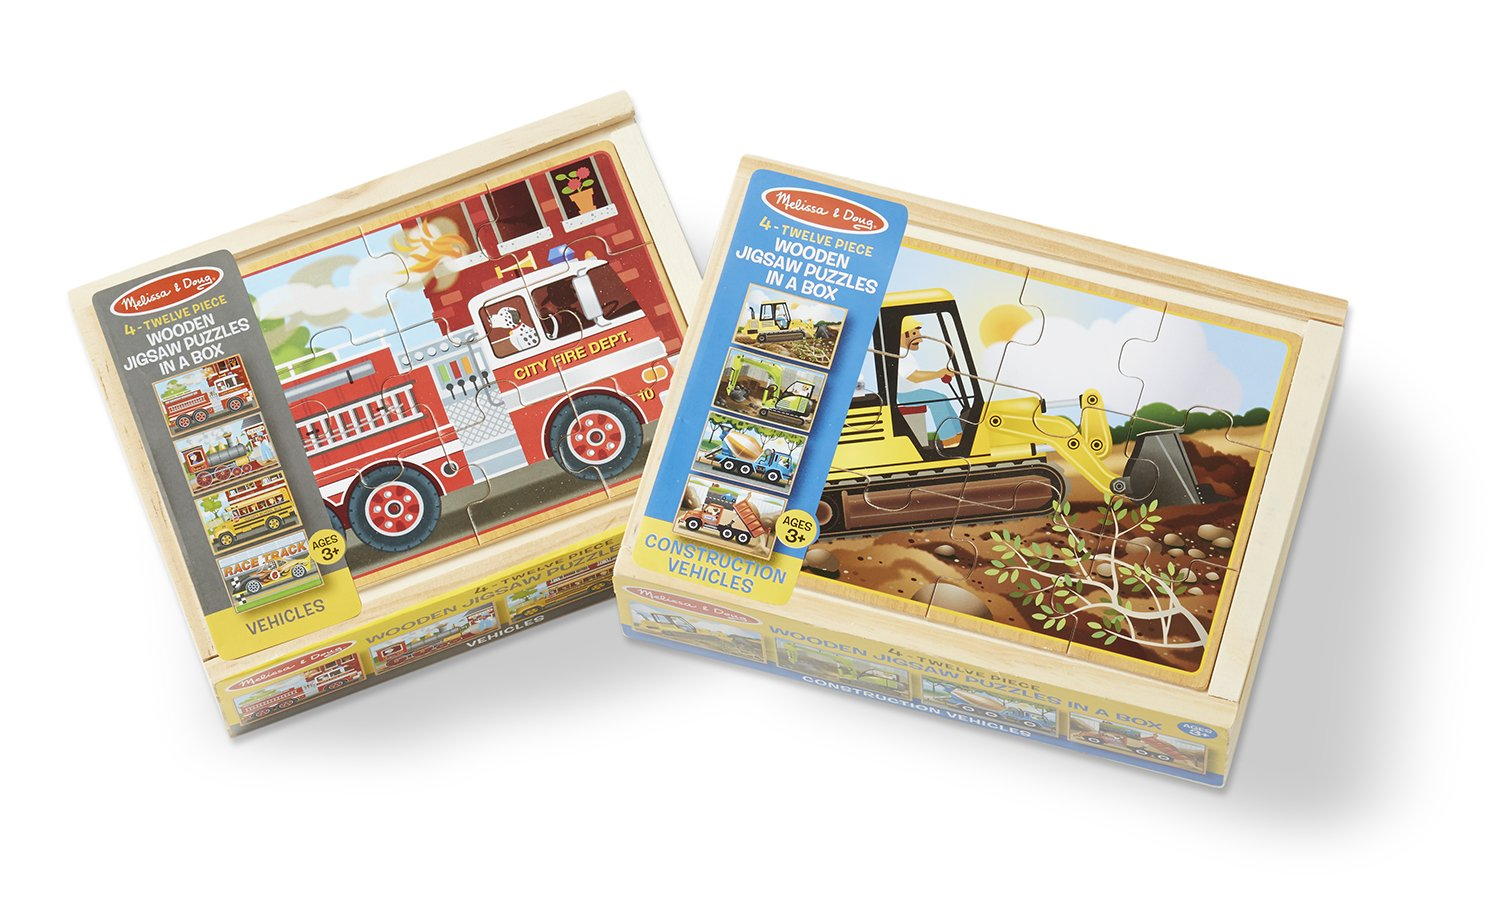 Melissa & Doug Vehicles 4-in-1 Wooden Jigsaw Puzzles in a Storage Box (48 pcs) 3794 Non-Classifiable